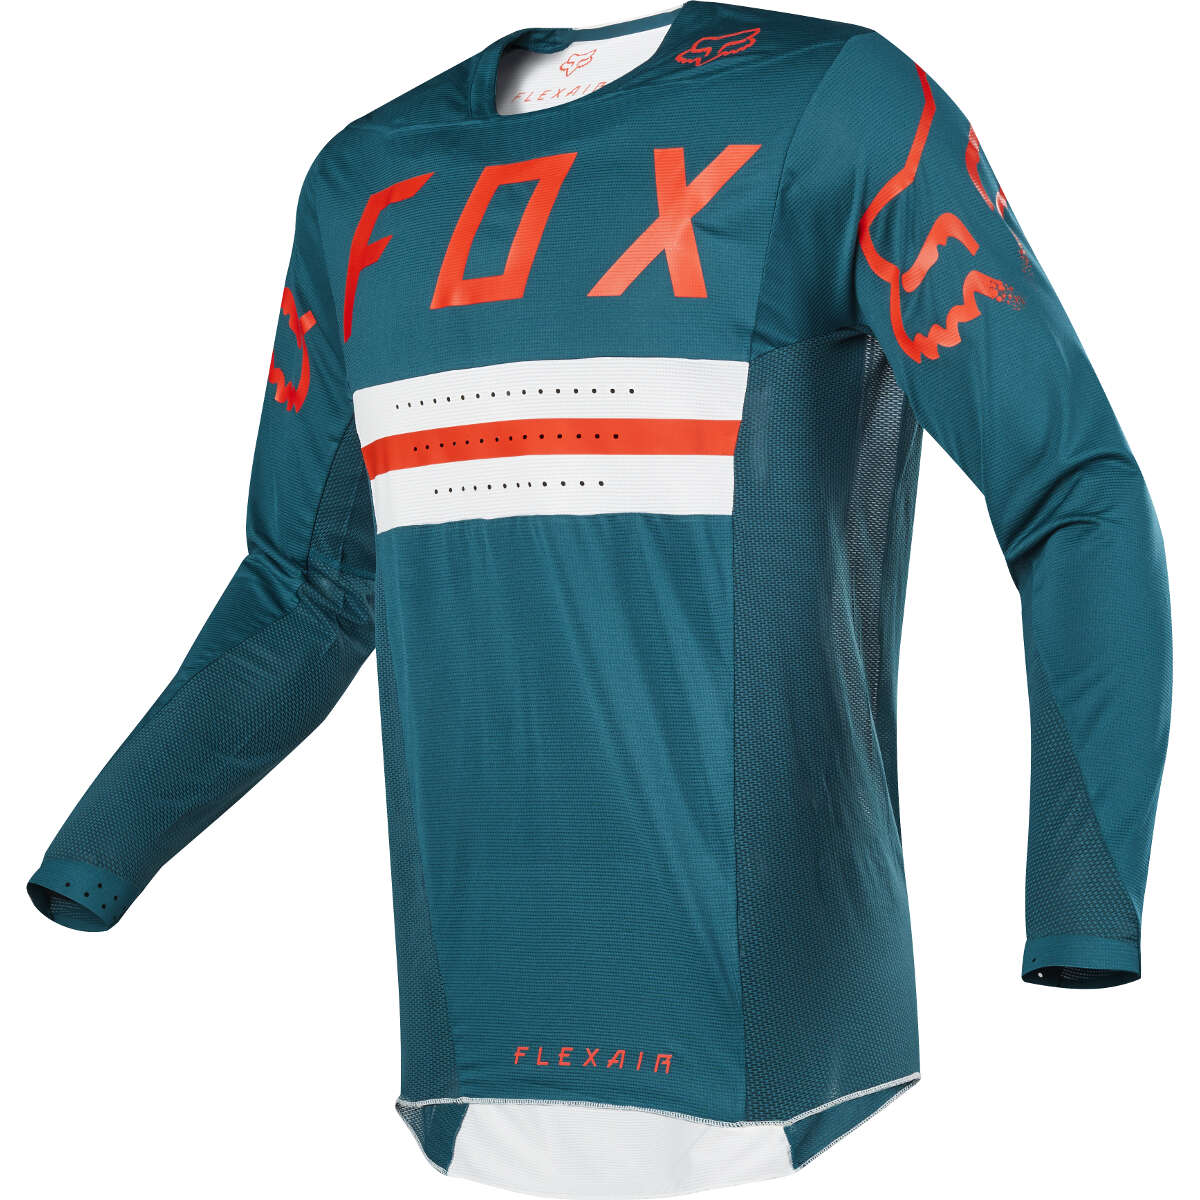 Fox Jersey Flexair Preest Forest Green - Limited Edition Indianapolis